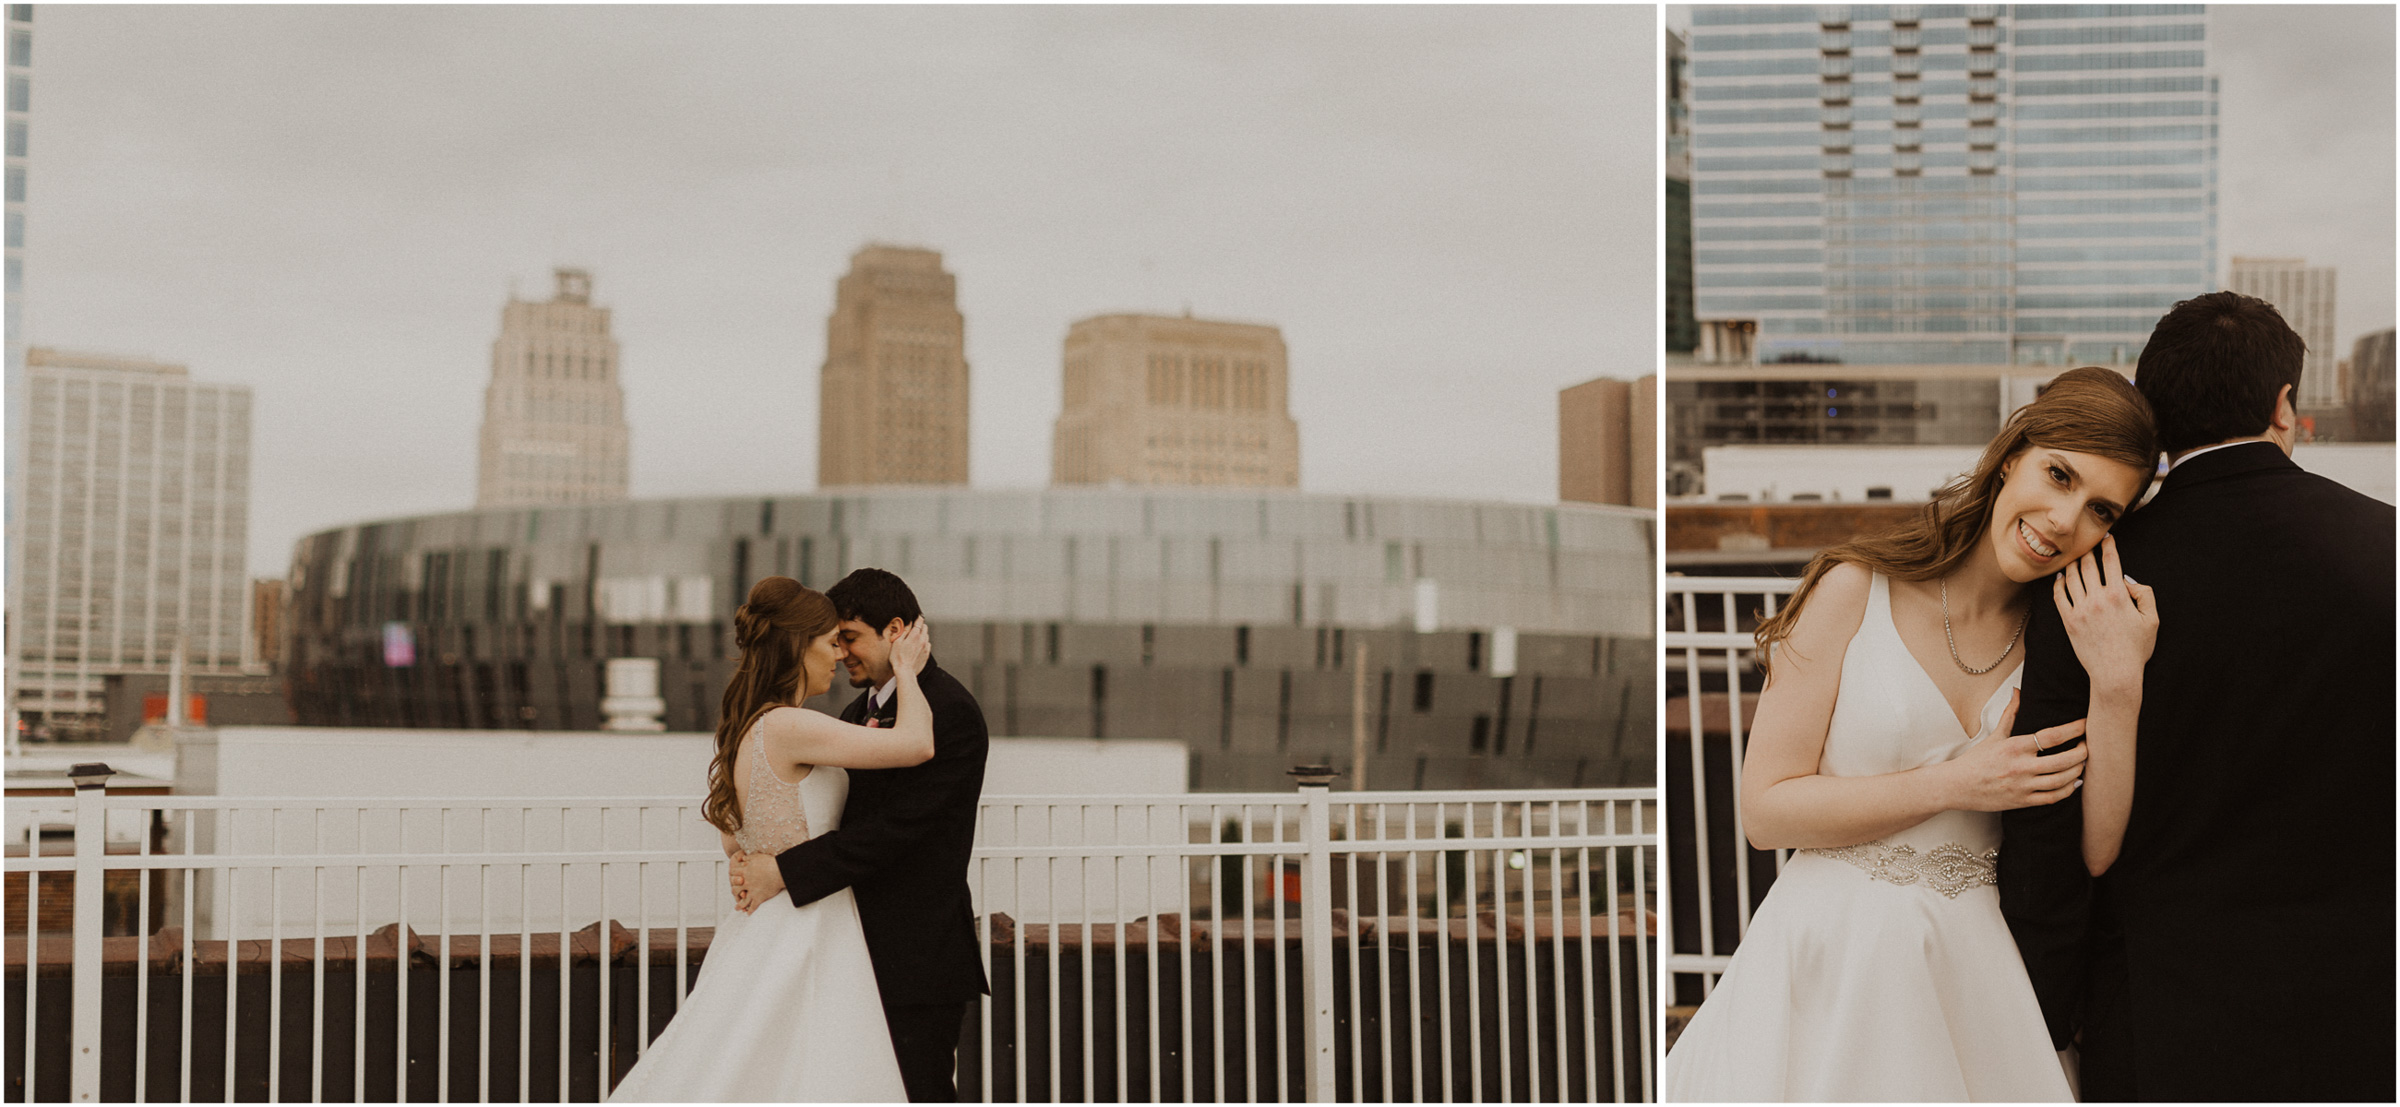 alyssa barletter photography terrace on grand skyline kansas city kc wedding photographer-13.jpg